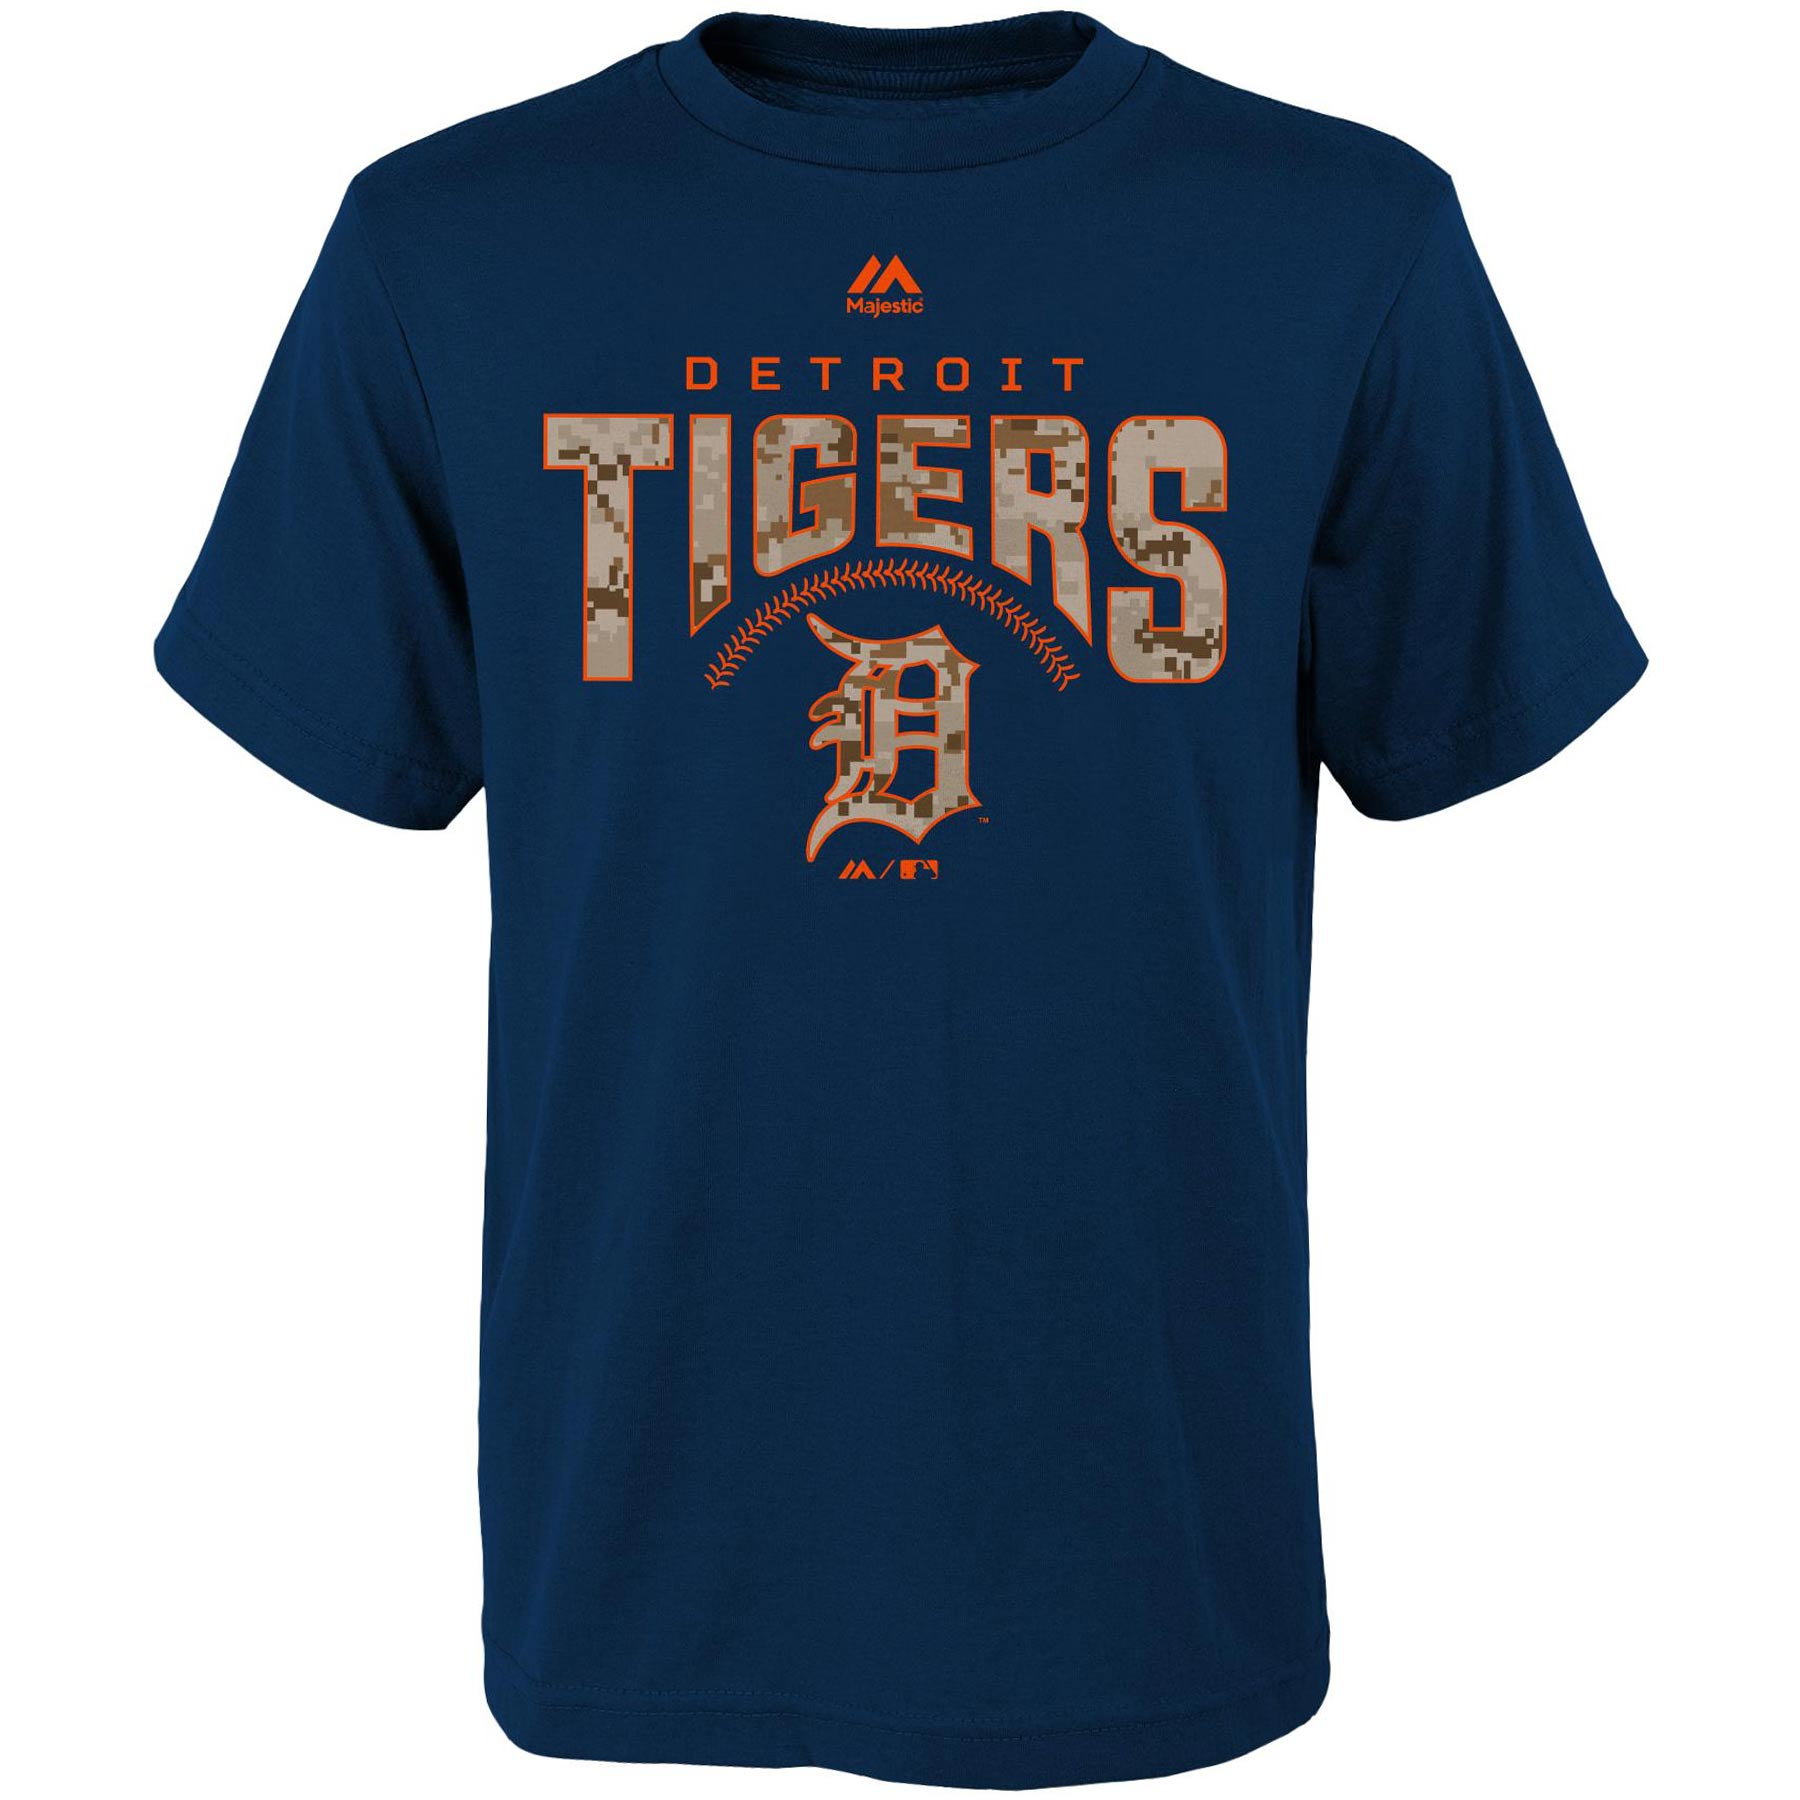 Detroit Tigers Majestic Youth Digi Camo T-Shirt - Navy